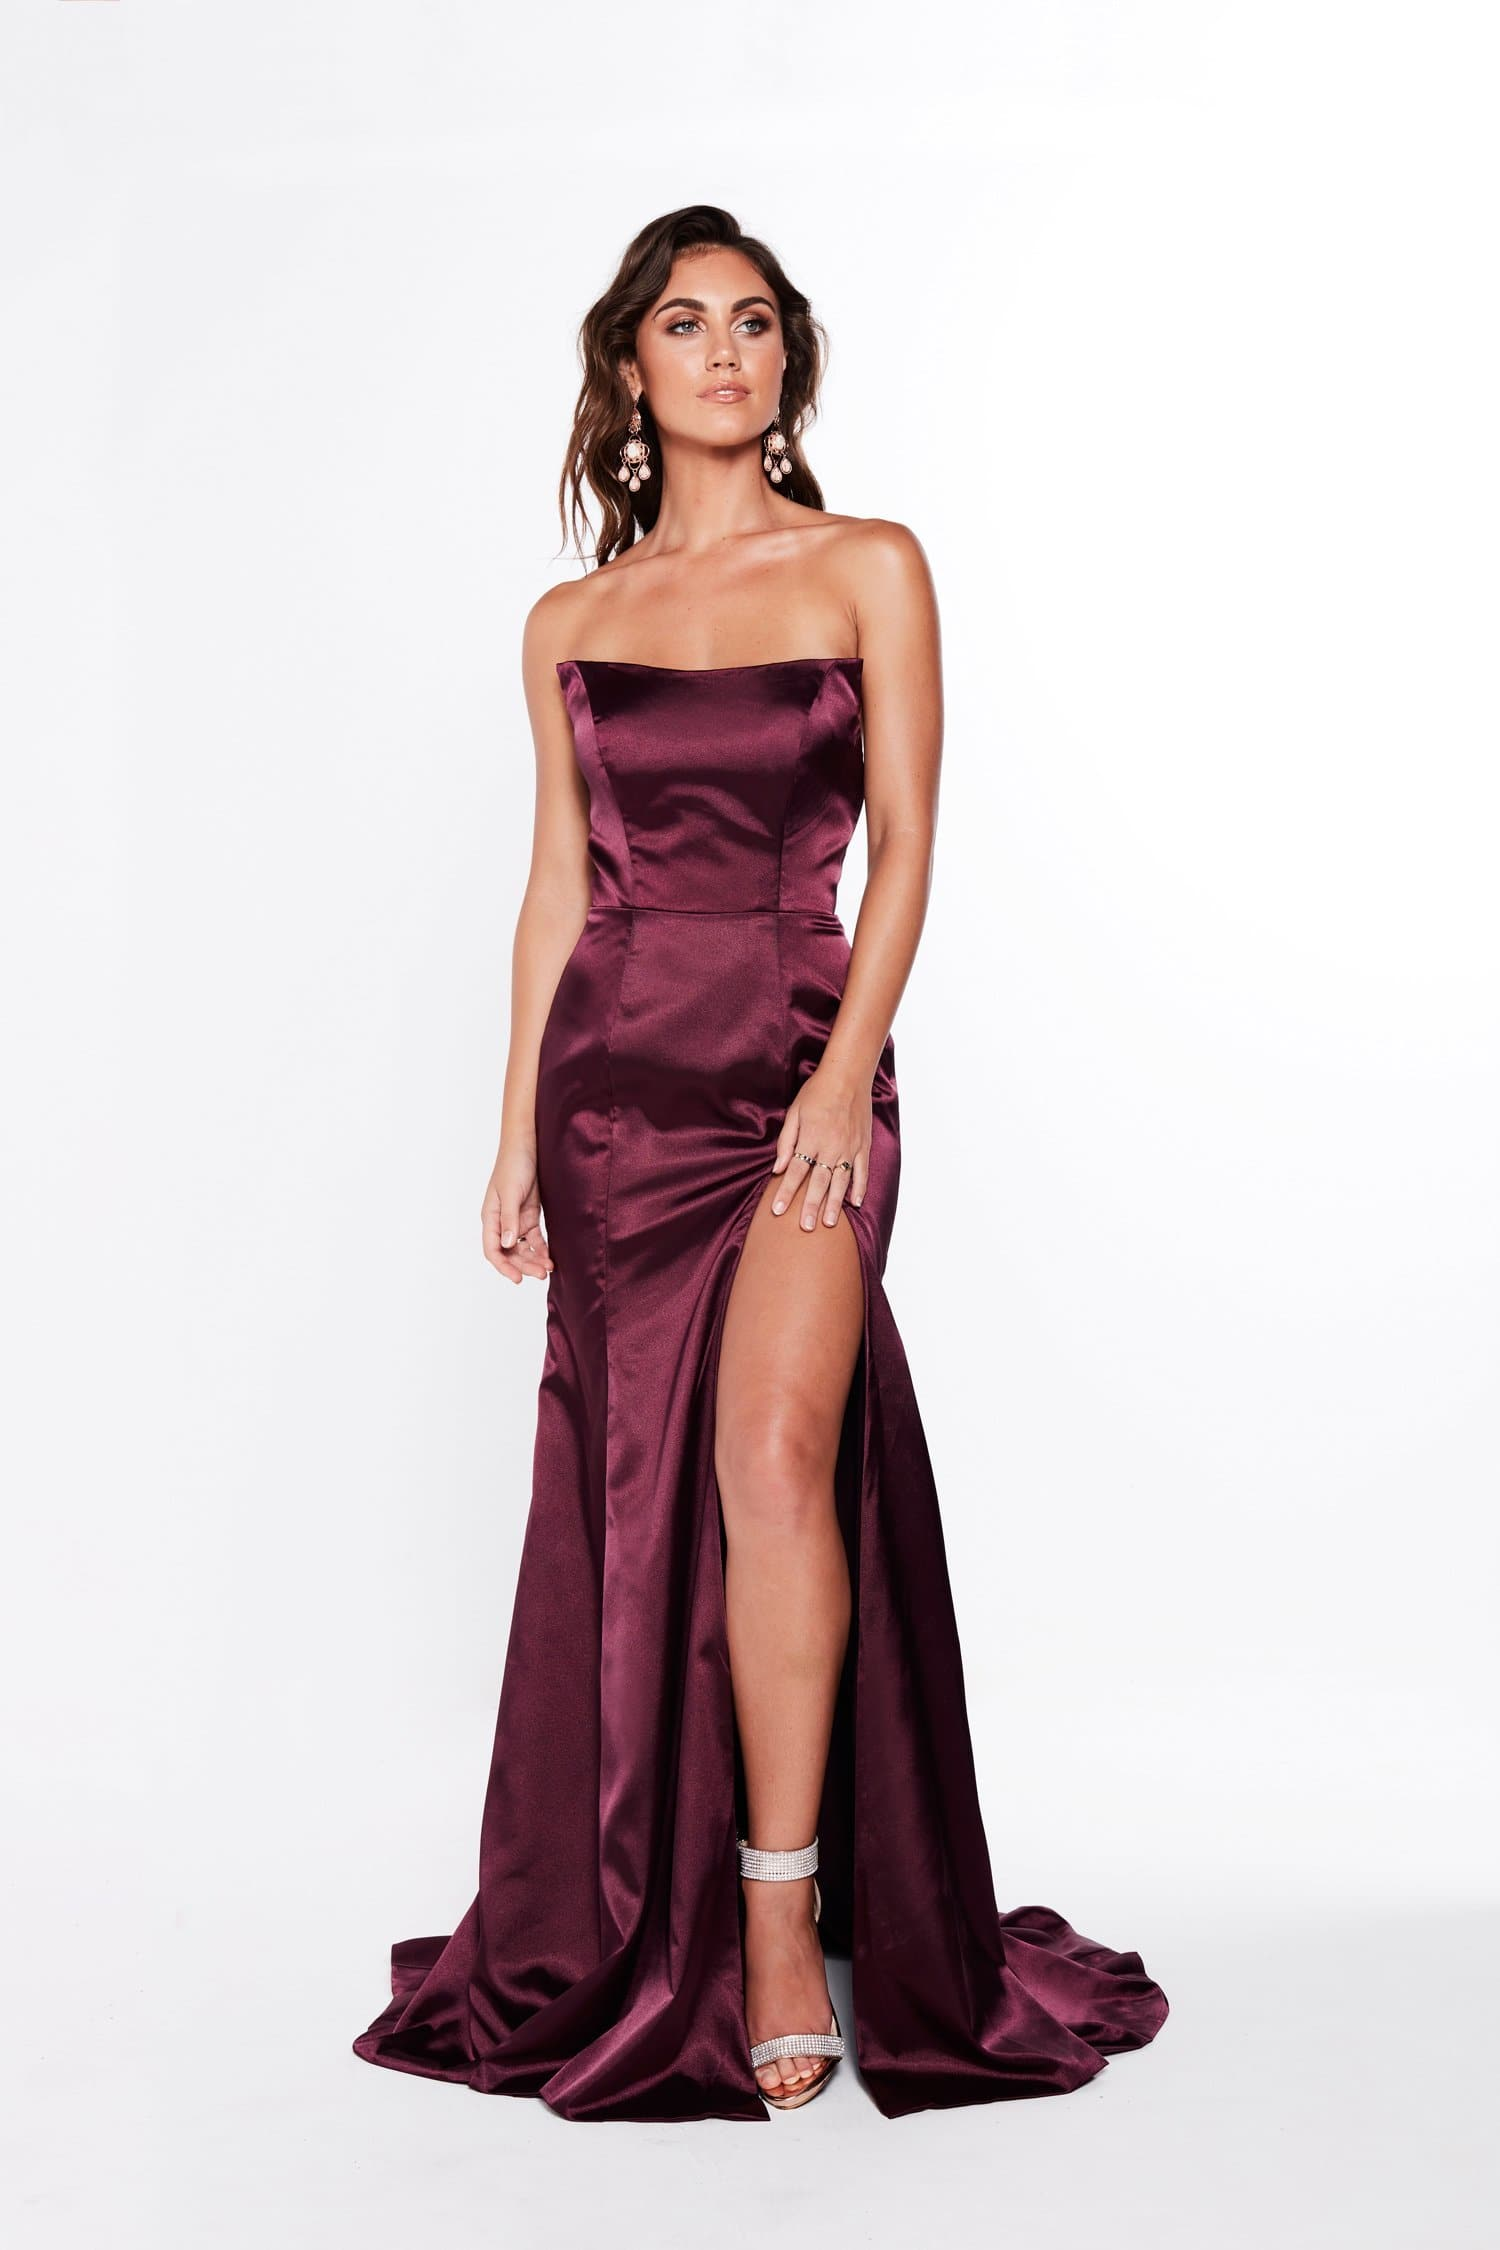 A&N Amelia - Strapless Satin Formal Gown with Side Slit in Violet